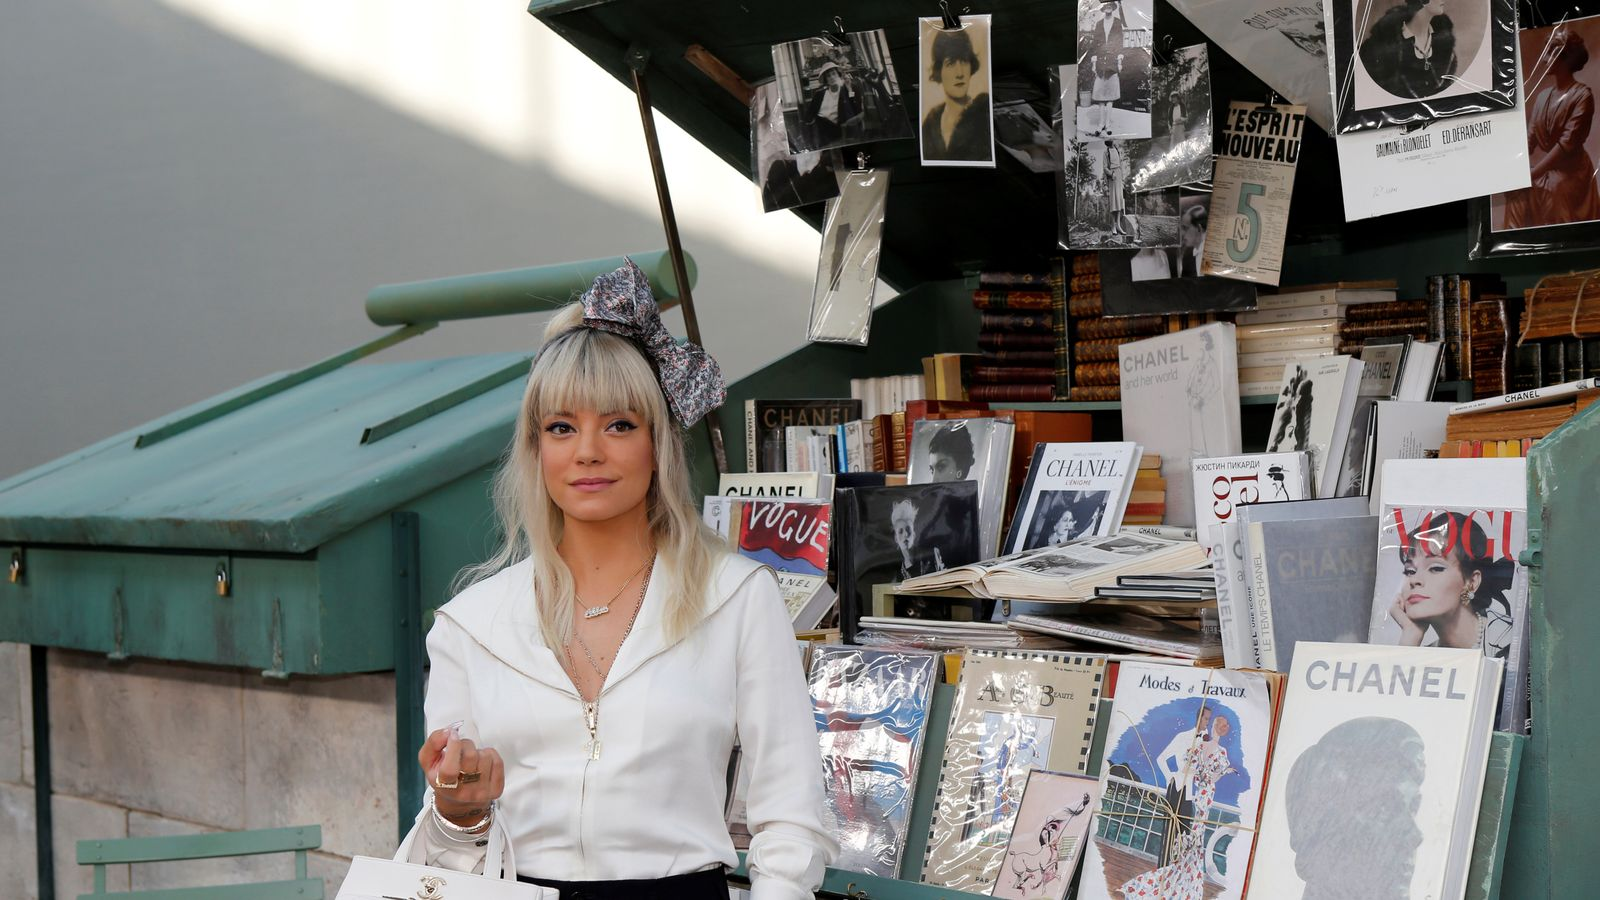 lily allen: 'i slept with female escorts on tour'